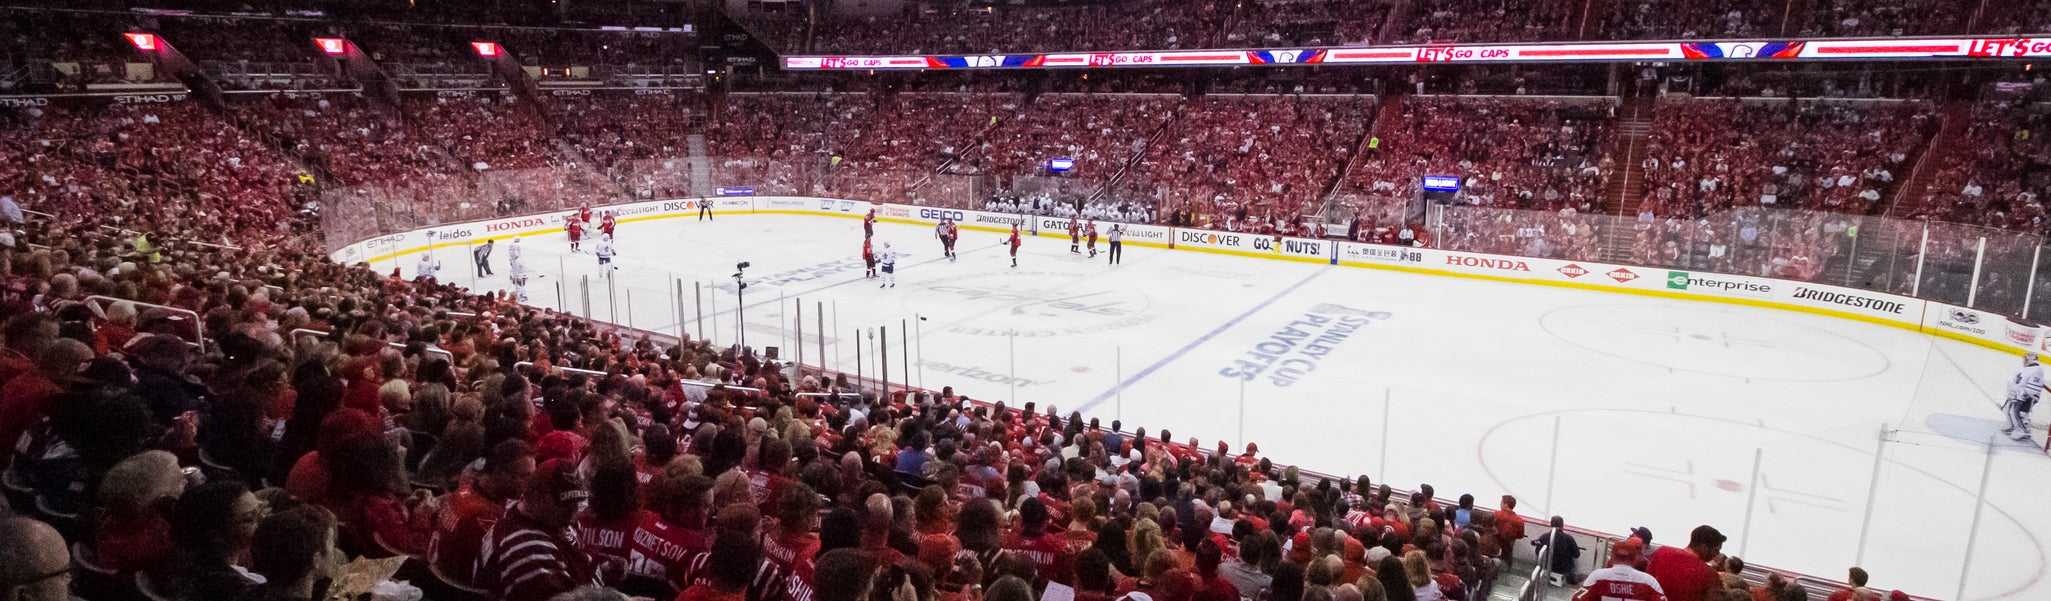 Seat view from LL Center Preferred 113 at Capital One Arena